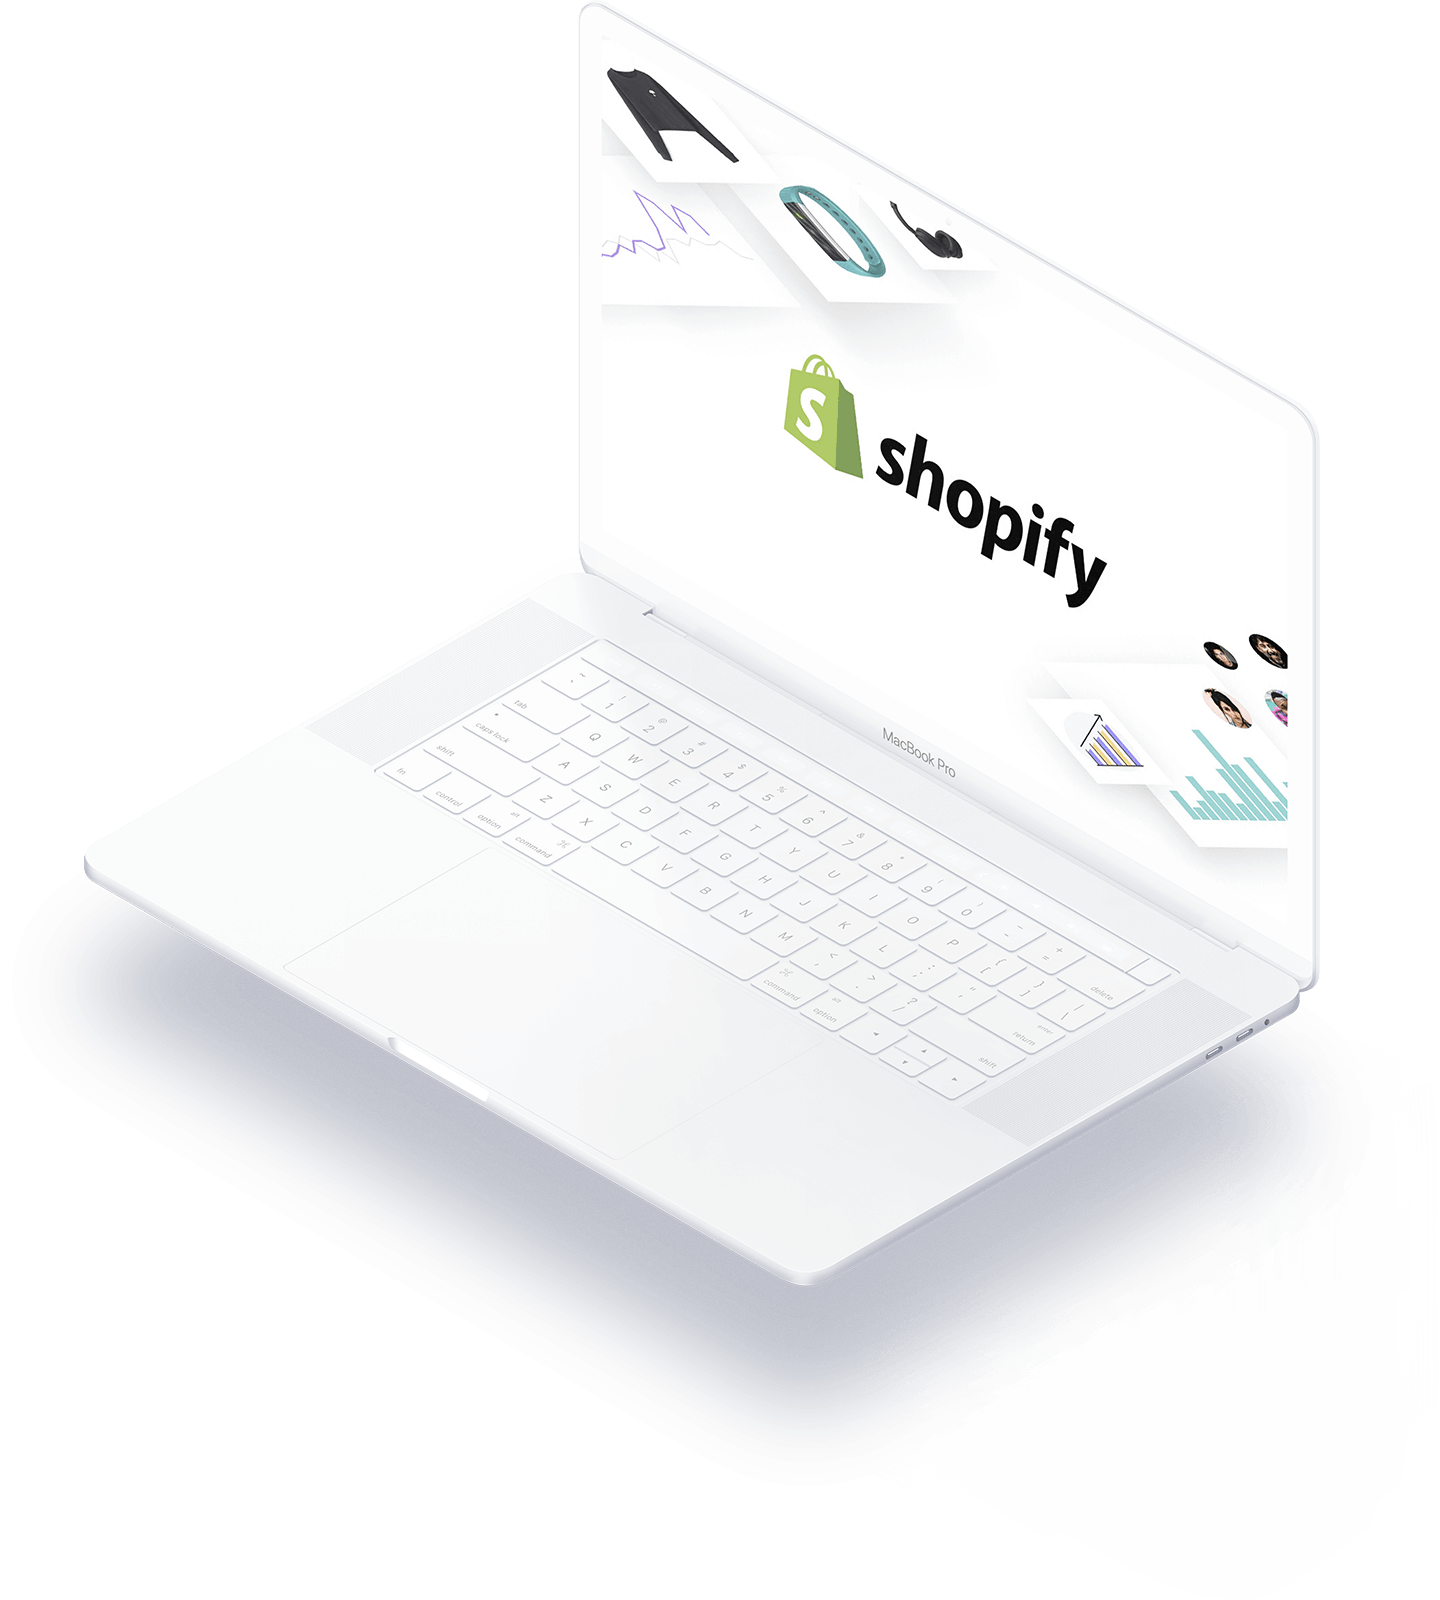 Shopify macbook